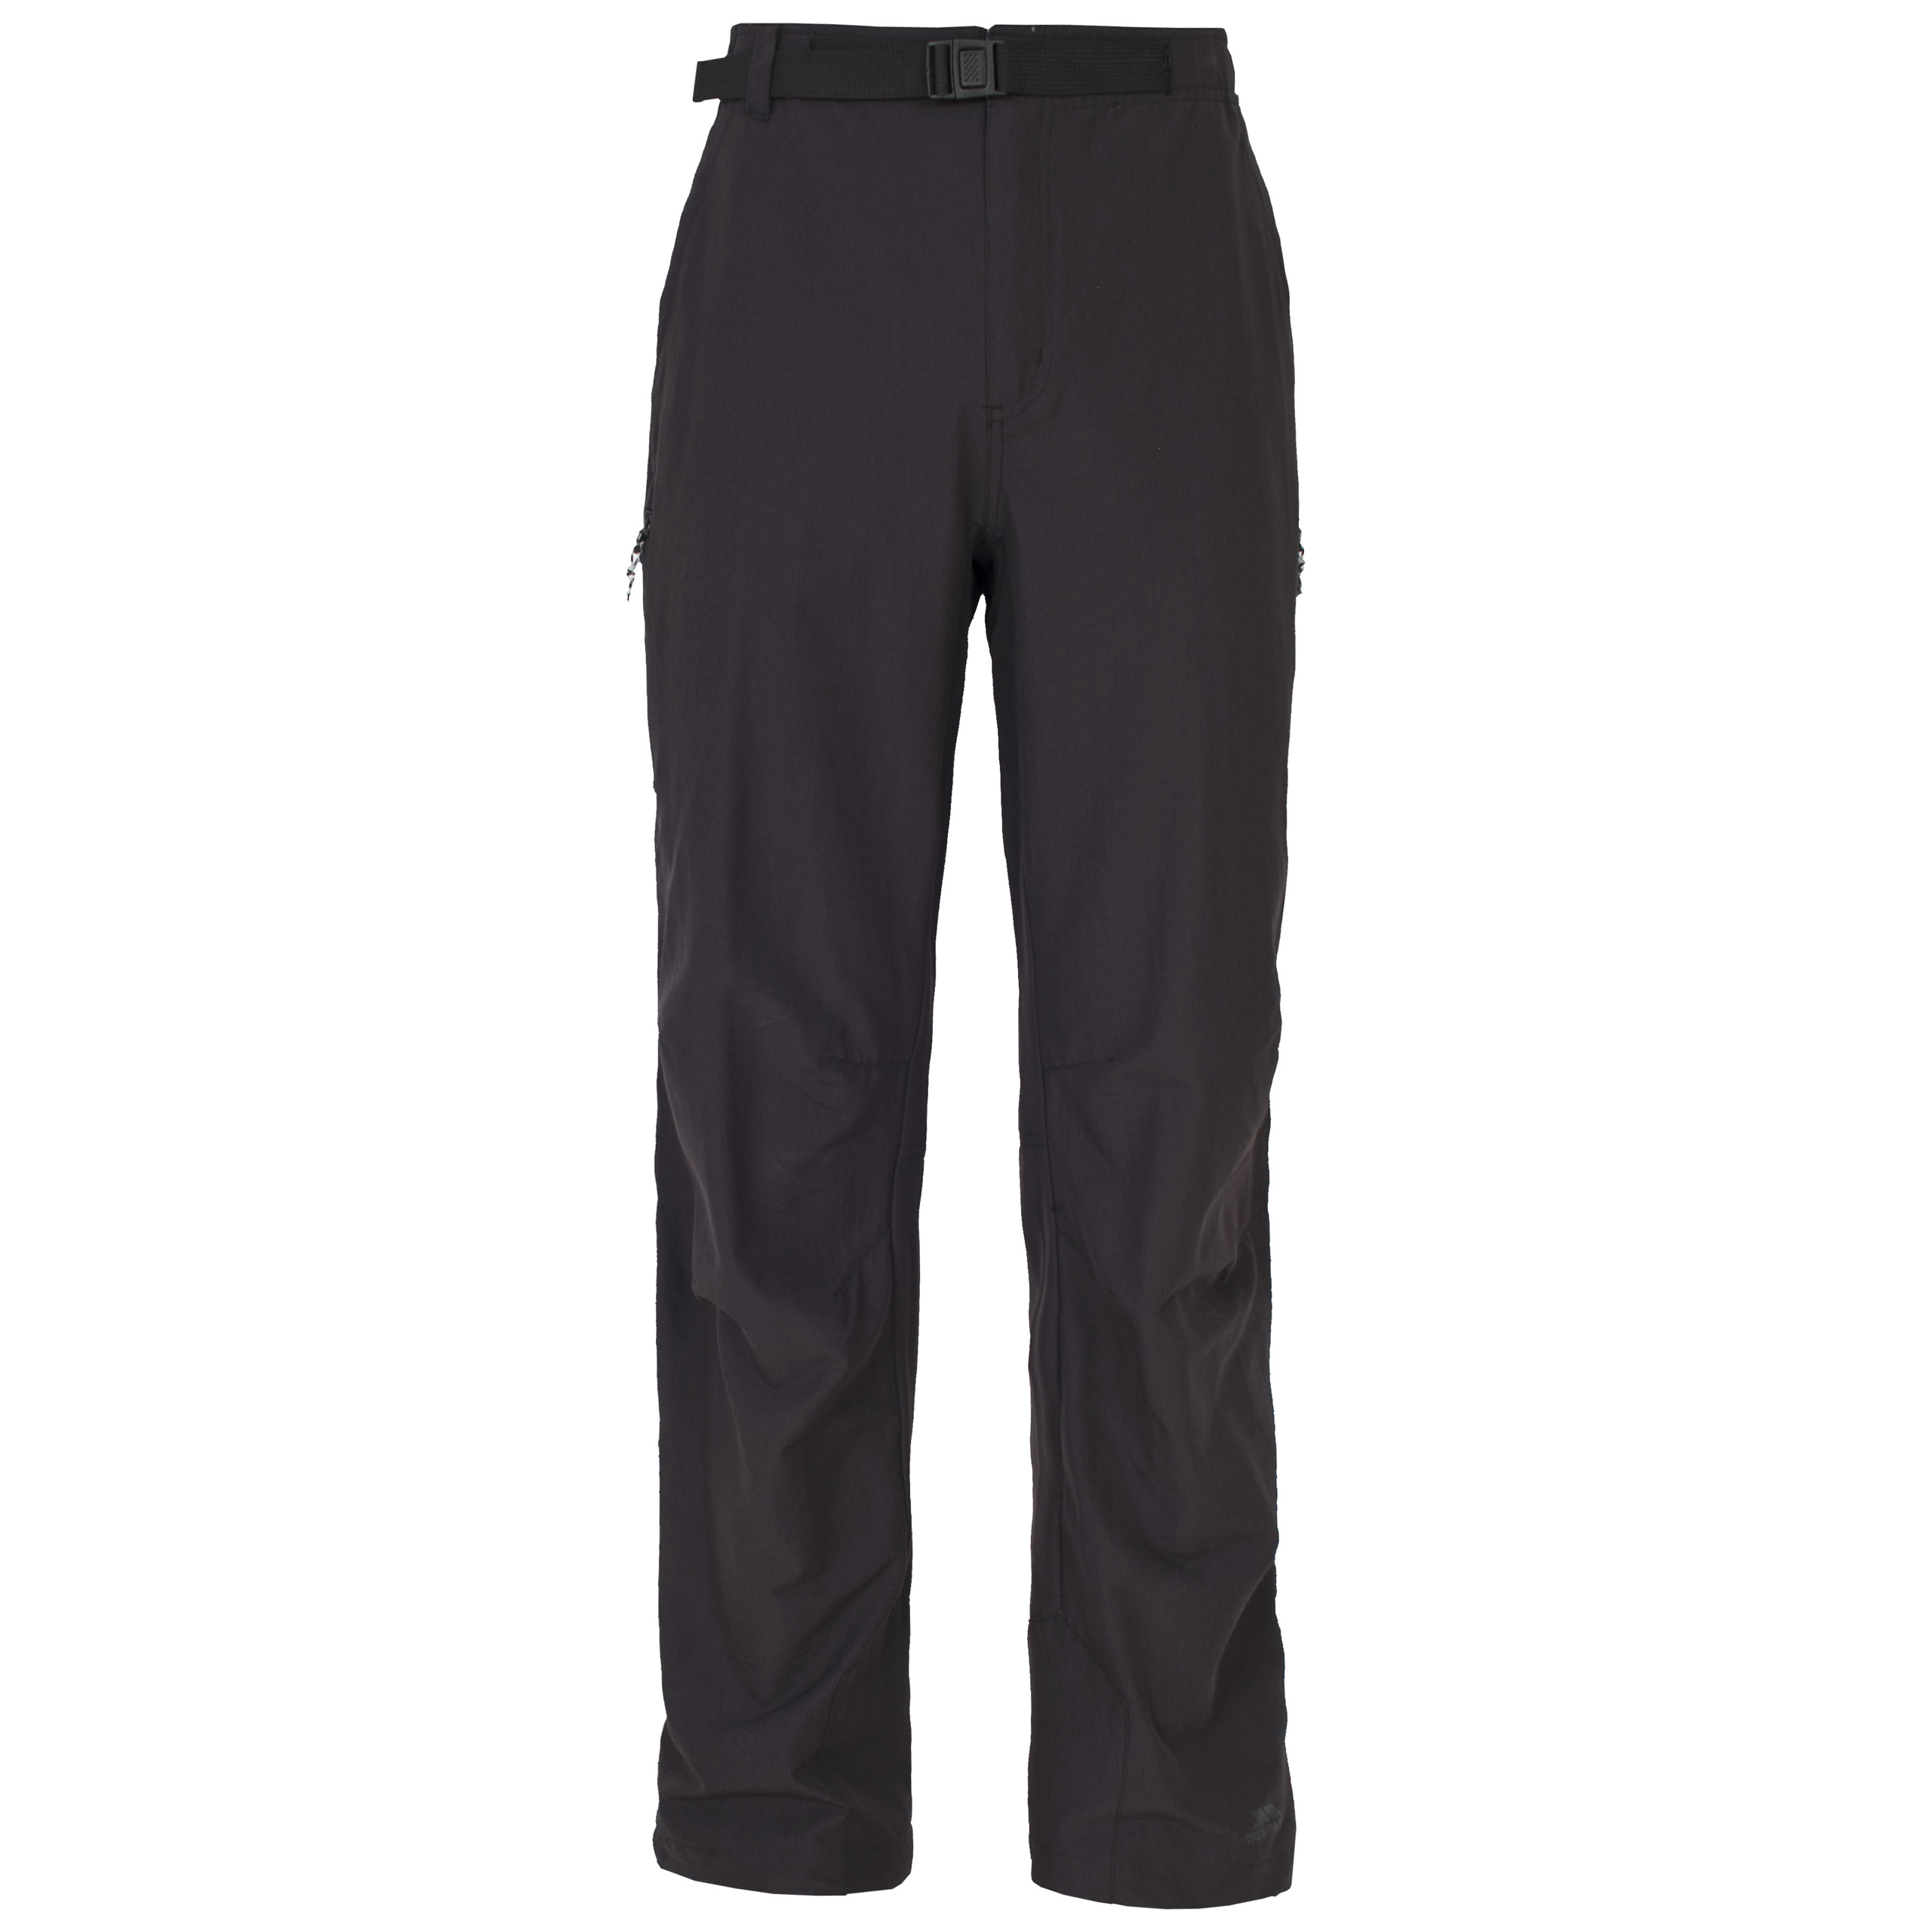 c77db039a7 Trespass Federation Mens Active Trousers Quick Dry Black Walking ...